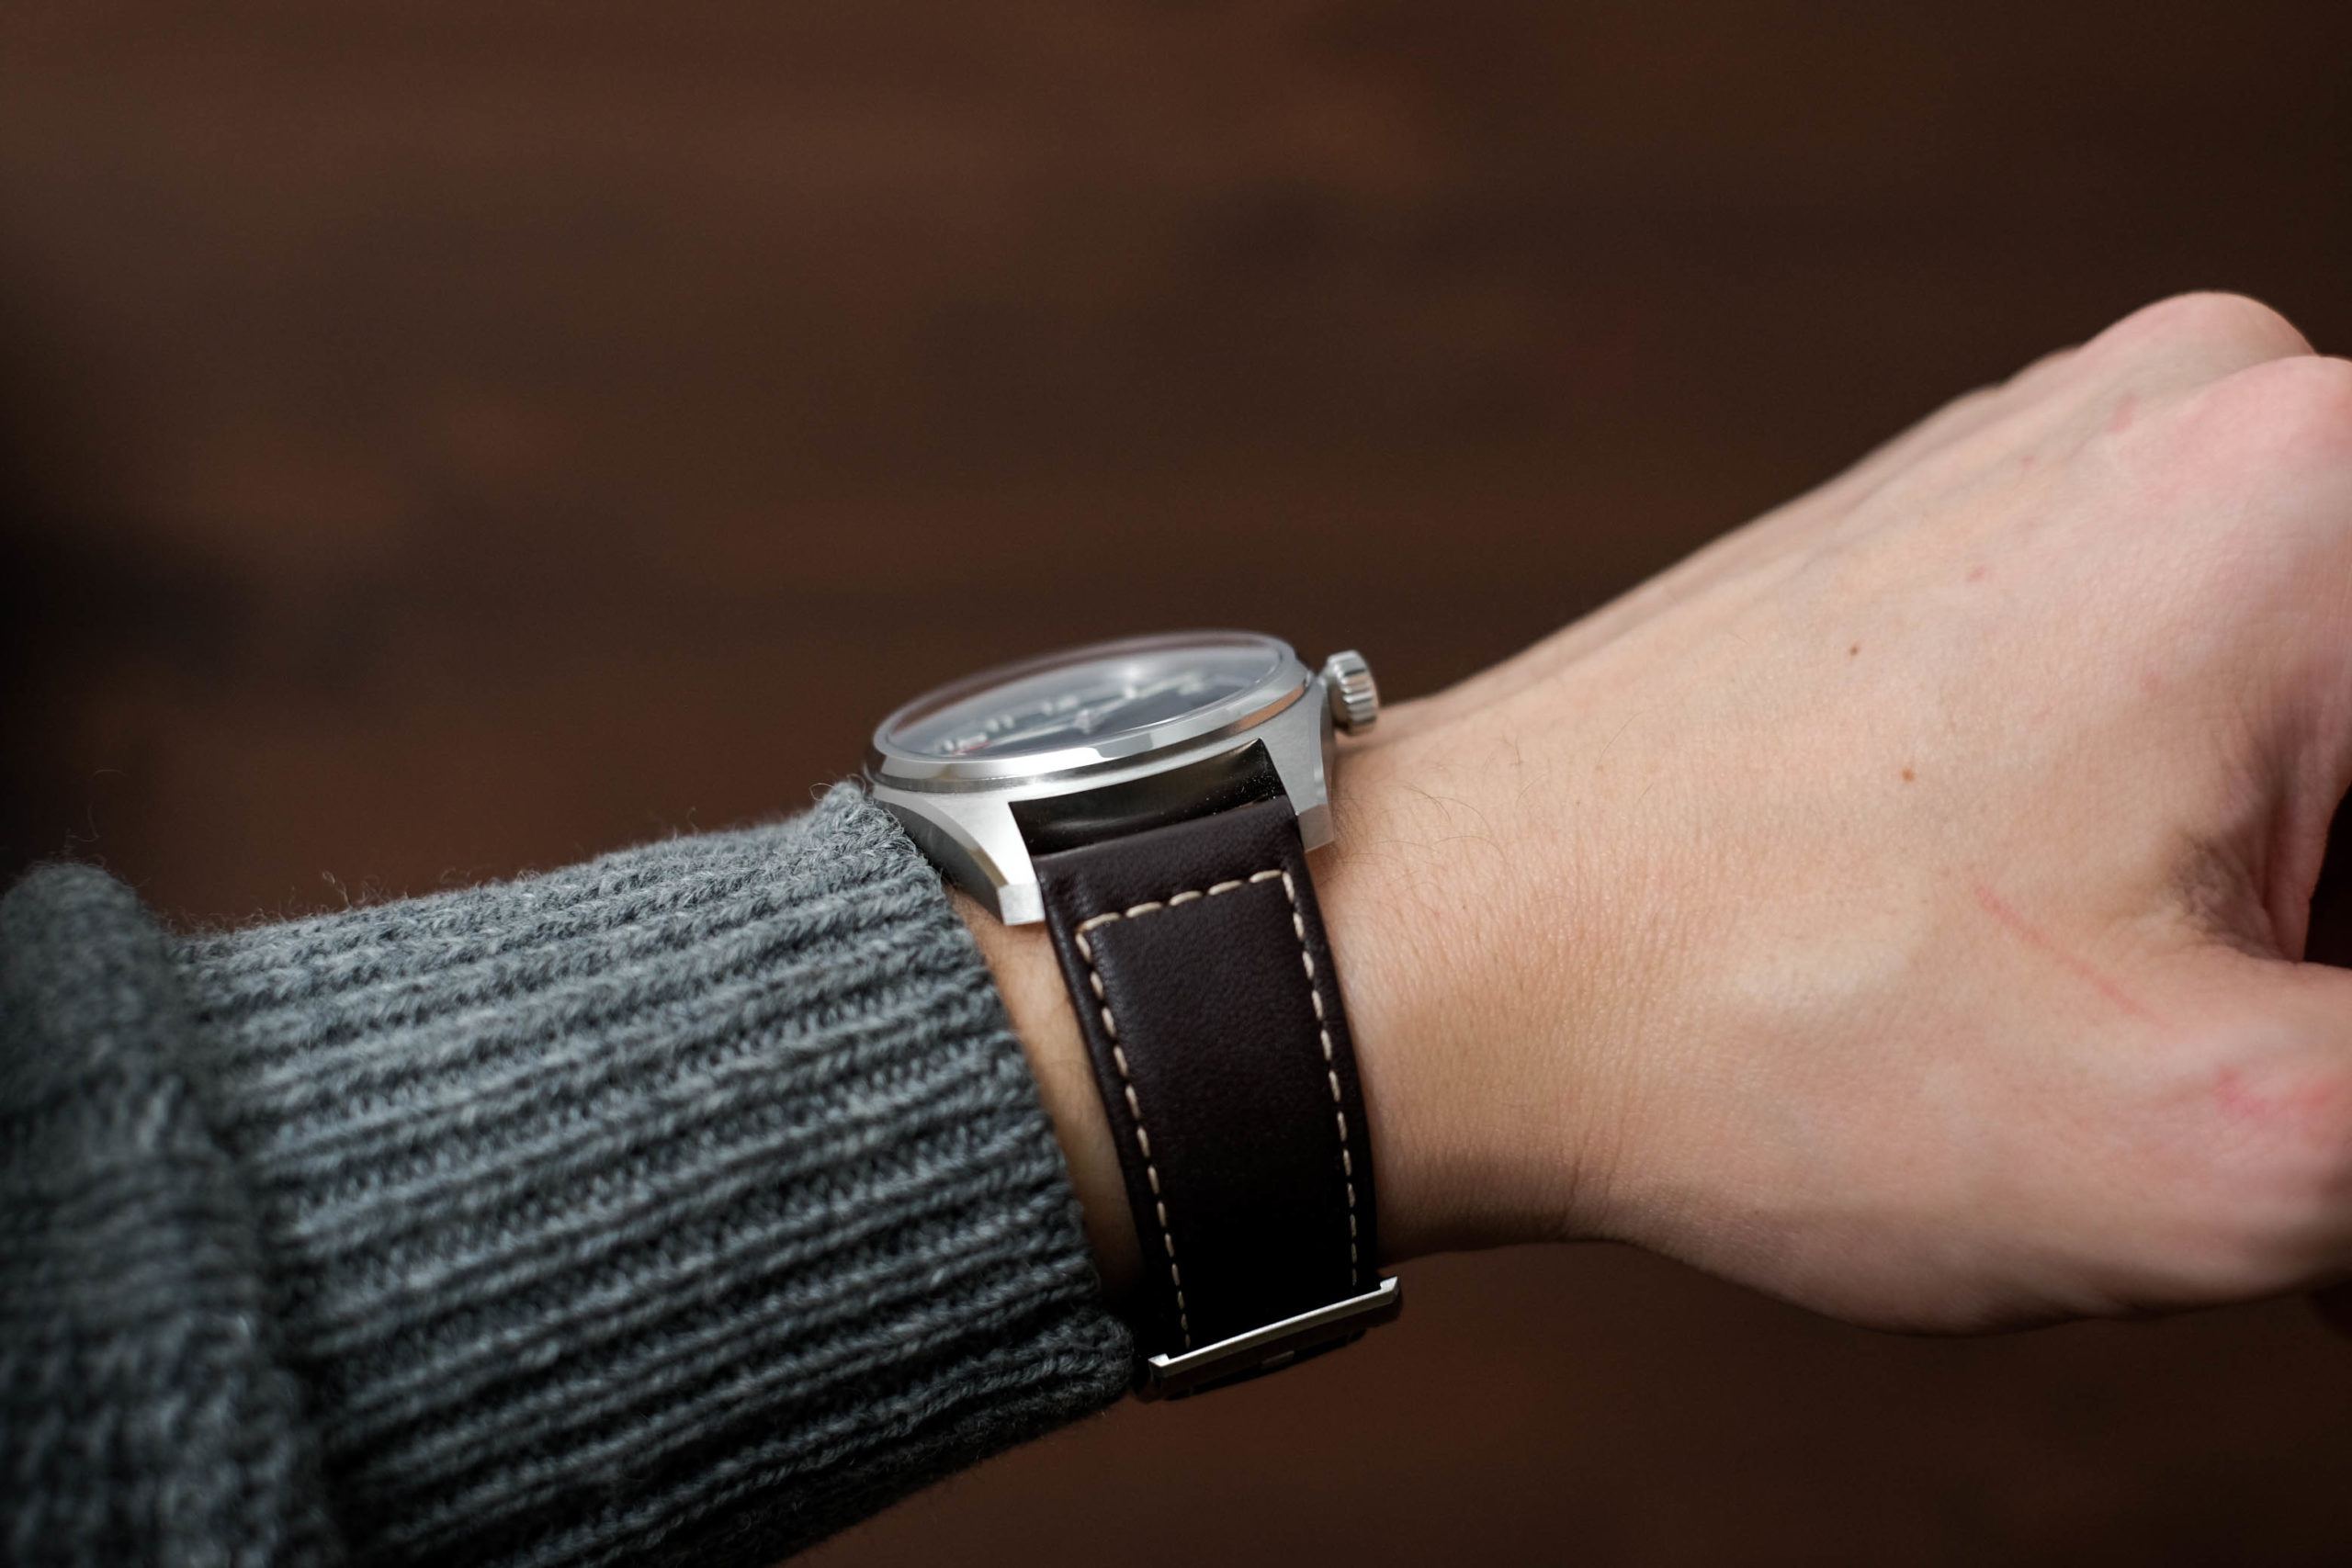 Photo of watch on the wrist from side